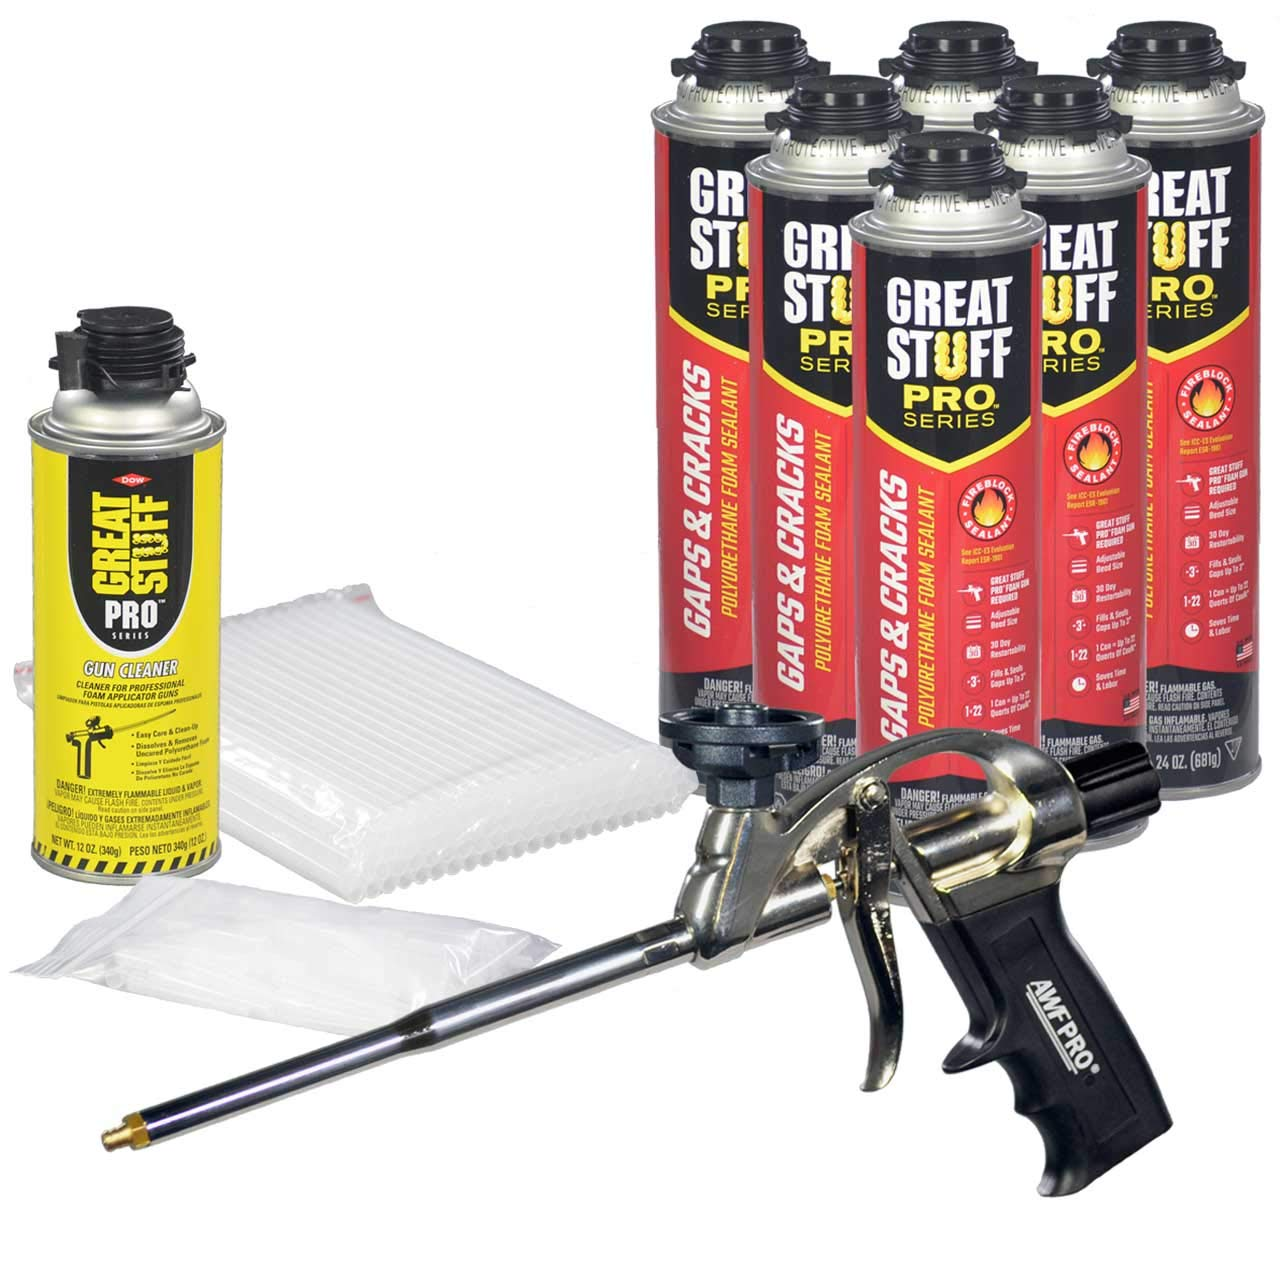 Dow Great Stuff PRO Gaps and Cracks 24 oz cans (6) + AWF Pro Foam Gun (1)+ Plastic Extension Straws (100) + Plastic Tips (100) + Dow Foam Cleaner (1) by Dow